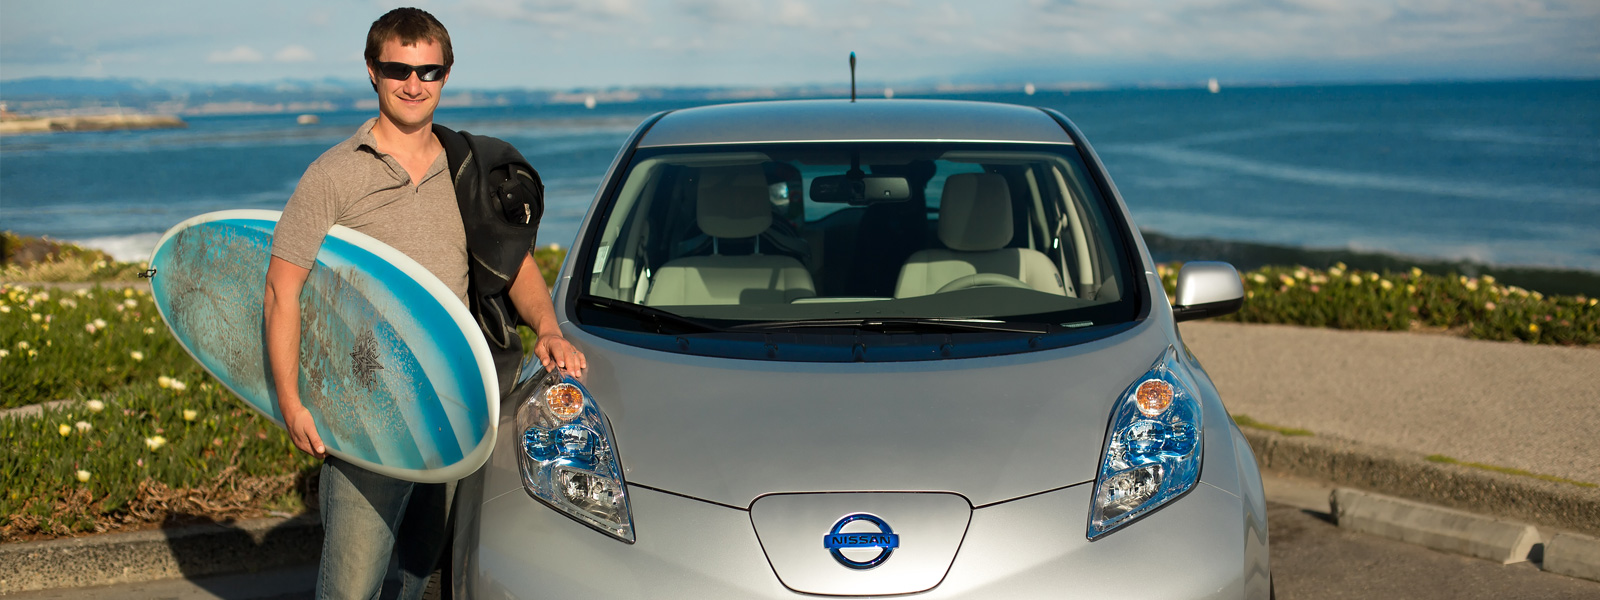 Monterey Bay Electric Vehicle Alliance (MBEVA)